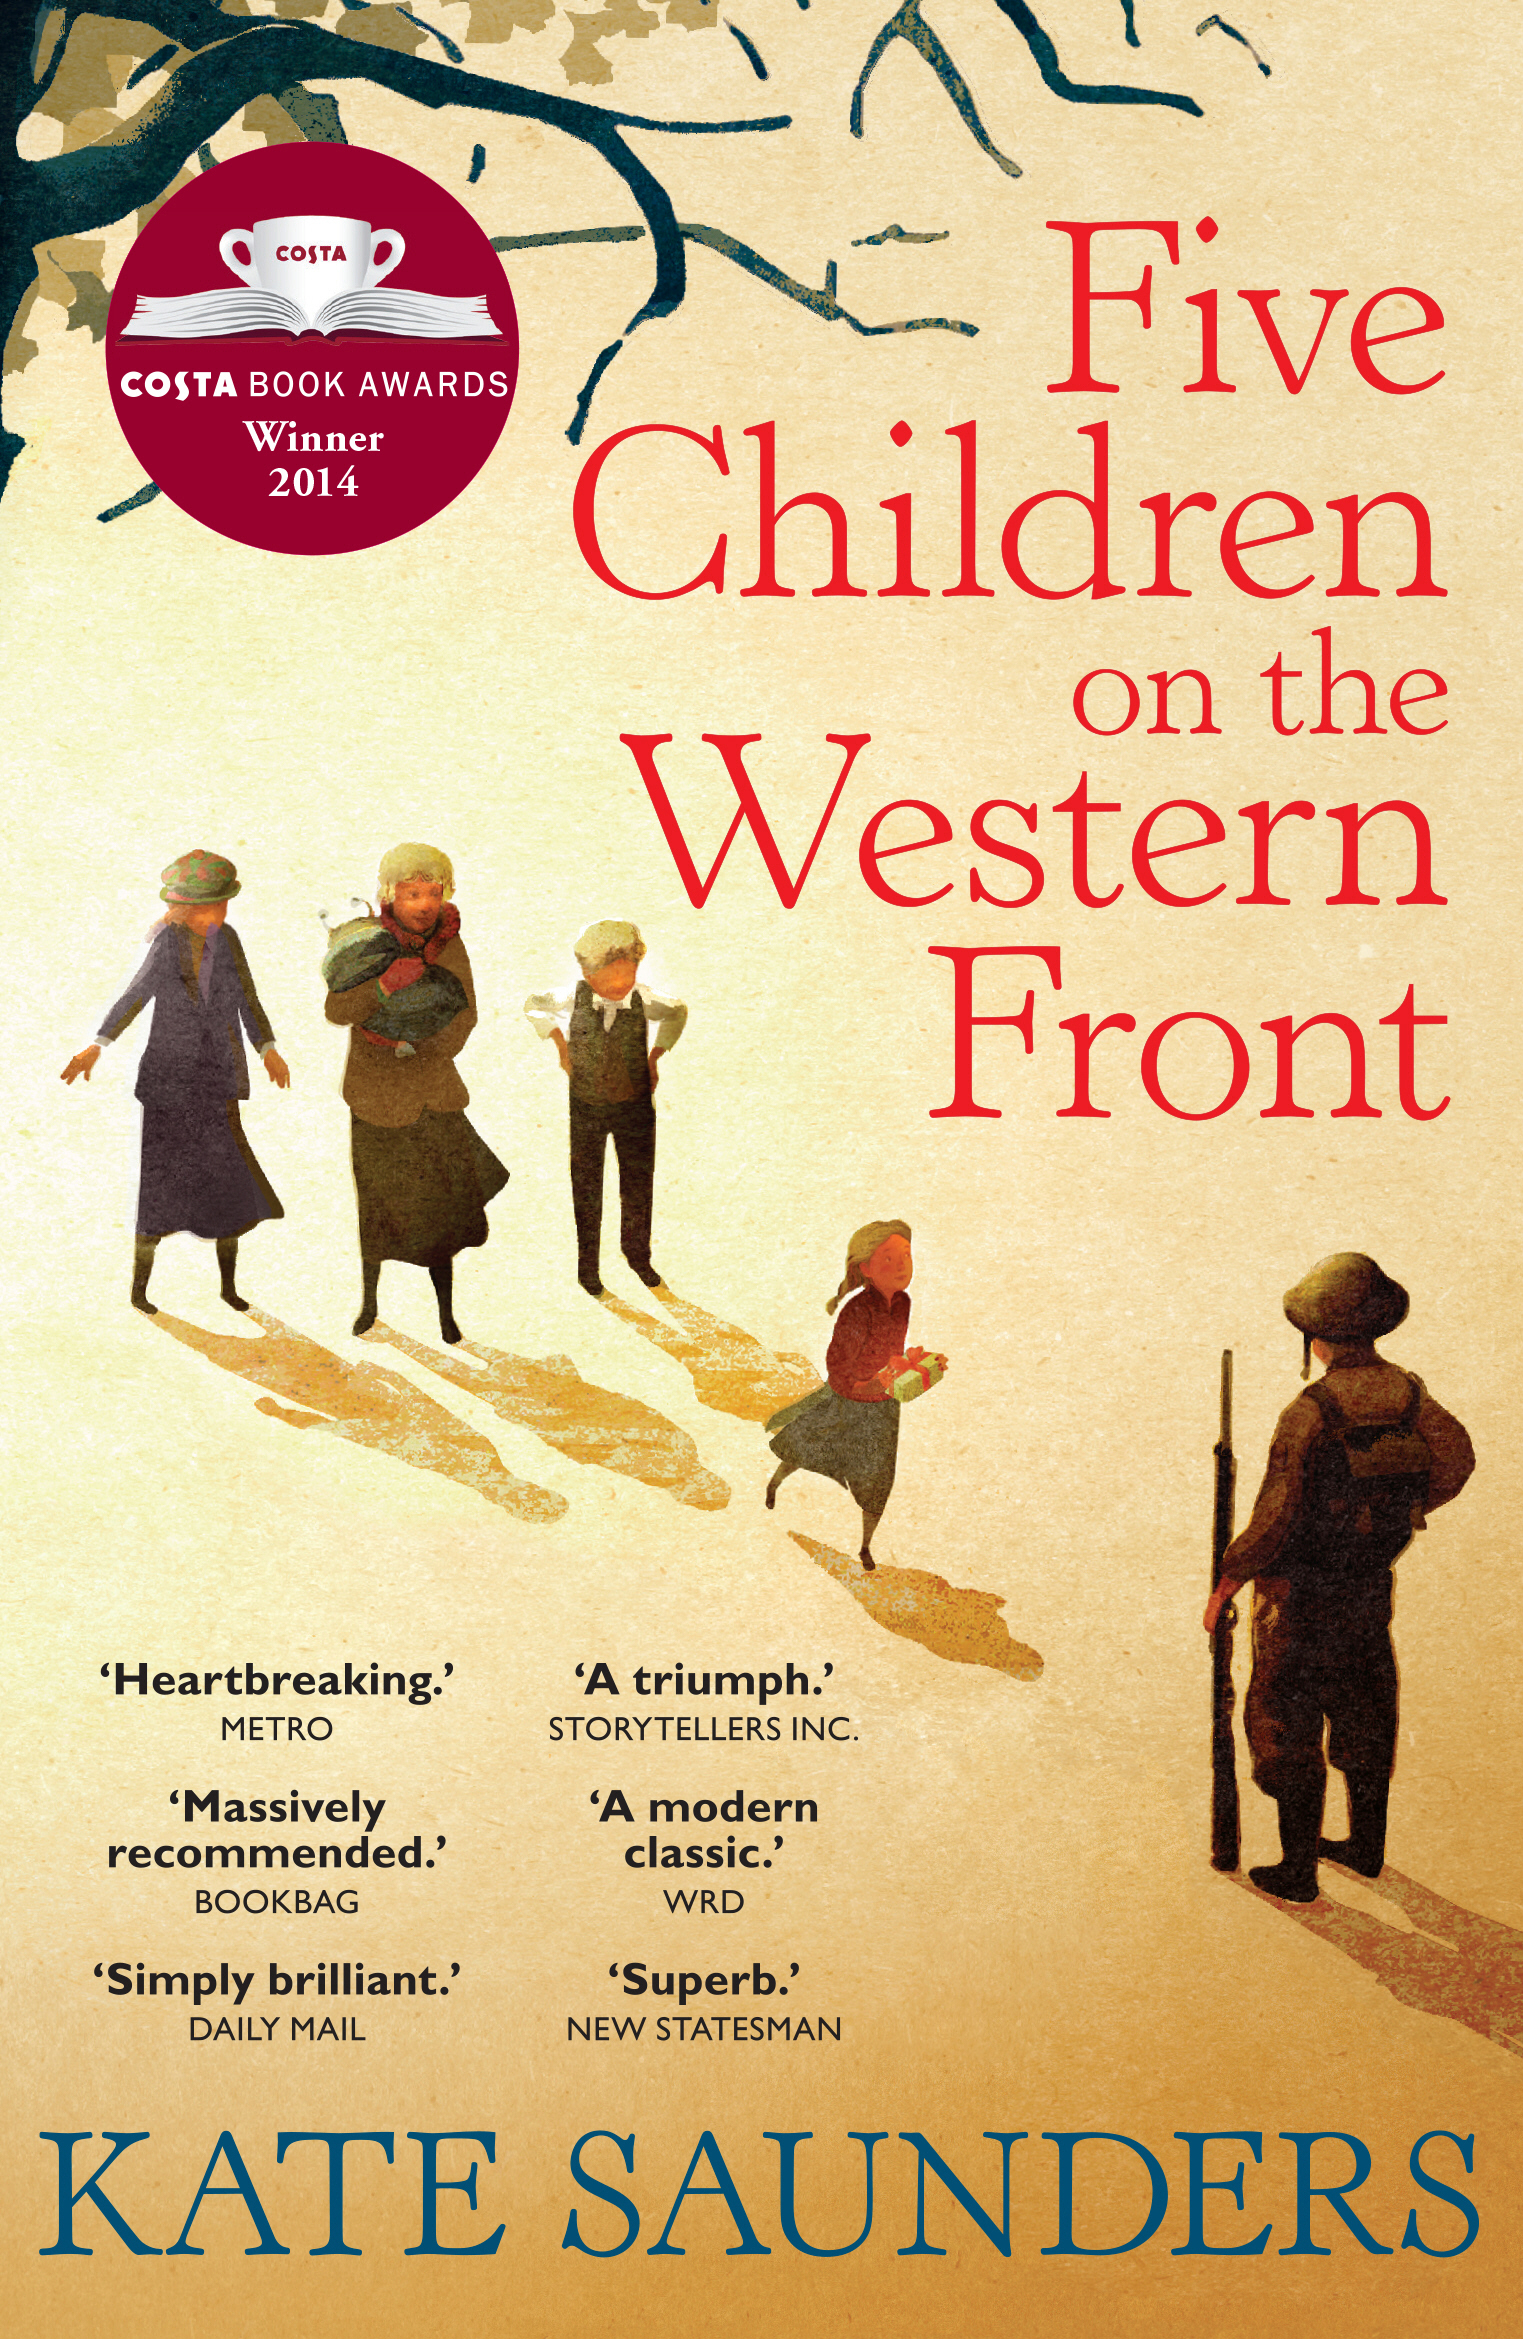 Cover Art for Five Children on the Western Front, ISBN: 9780571323180